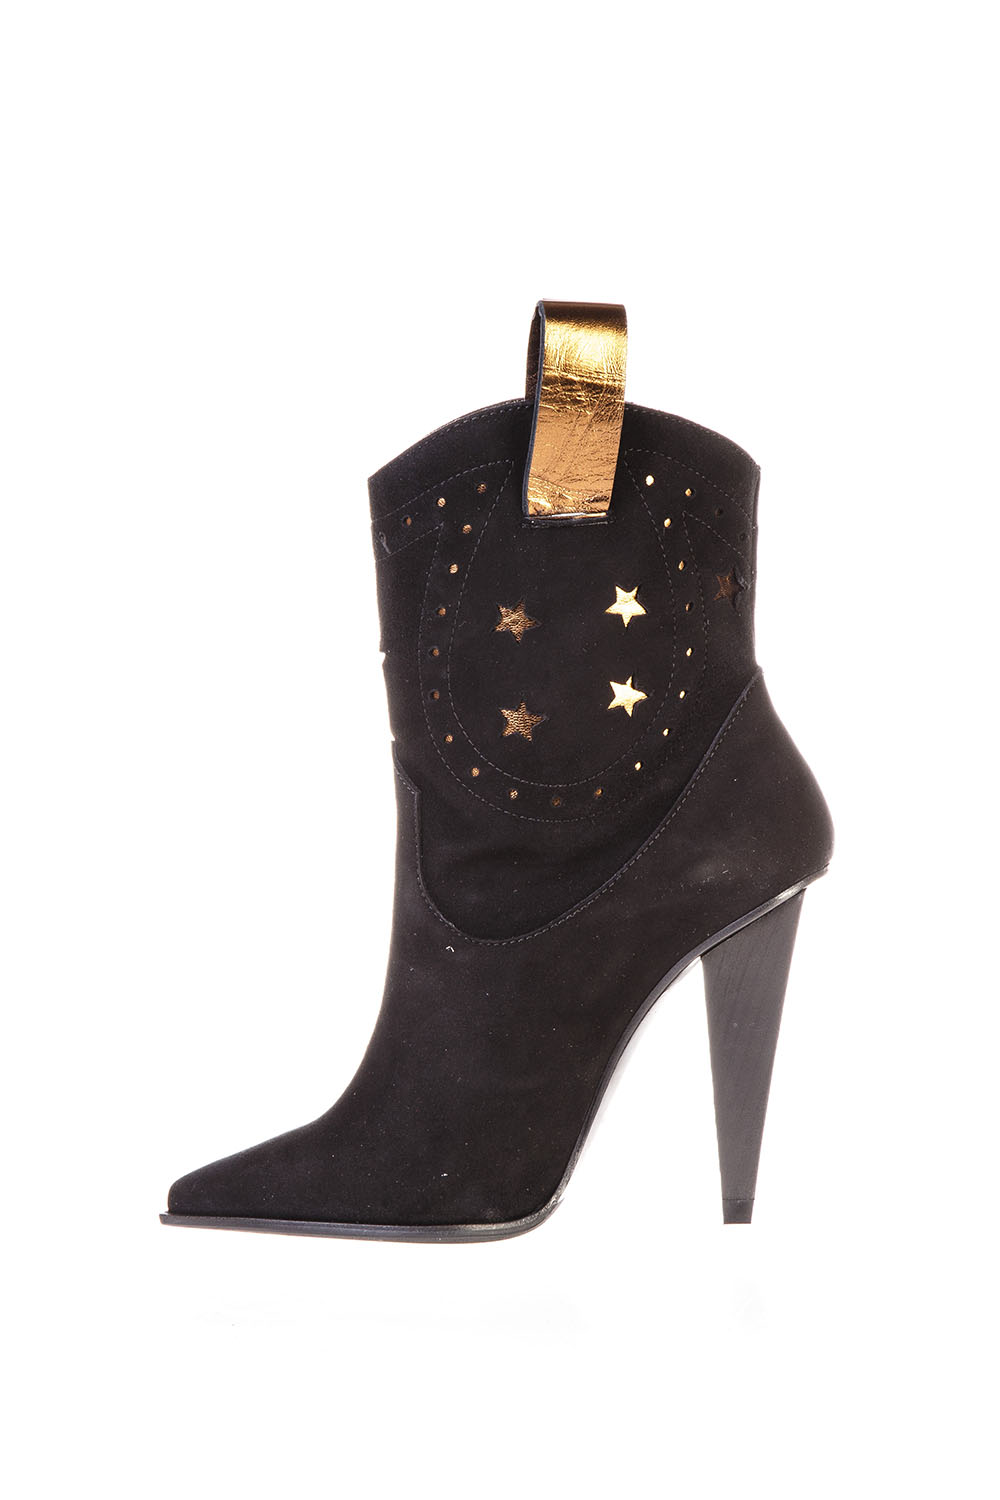 Marc Ellis studded ankle boots sale fast delivery free shipping visa payment cheap great deals RlPTcoe1